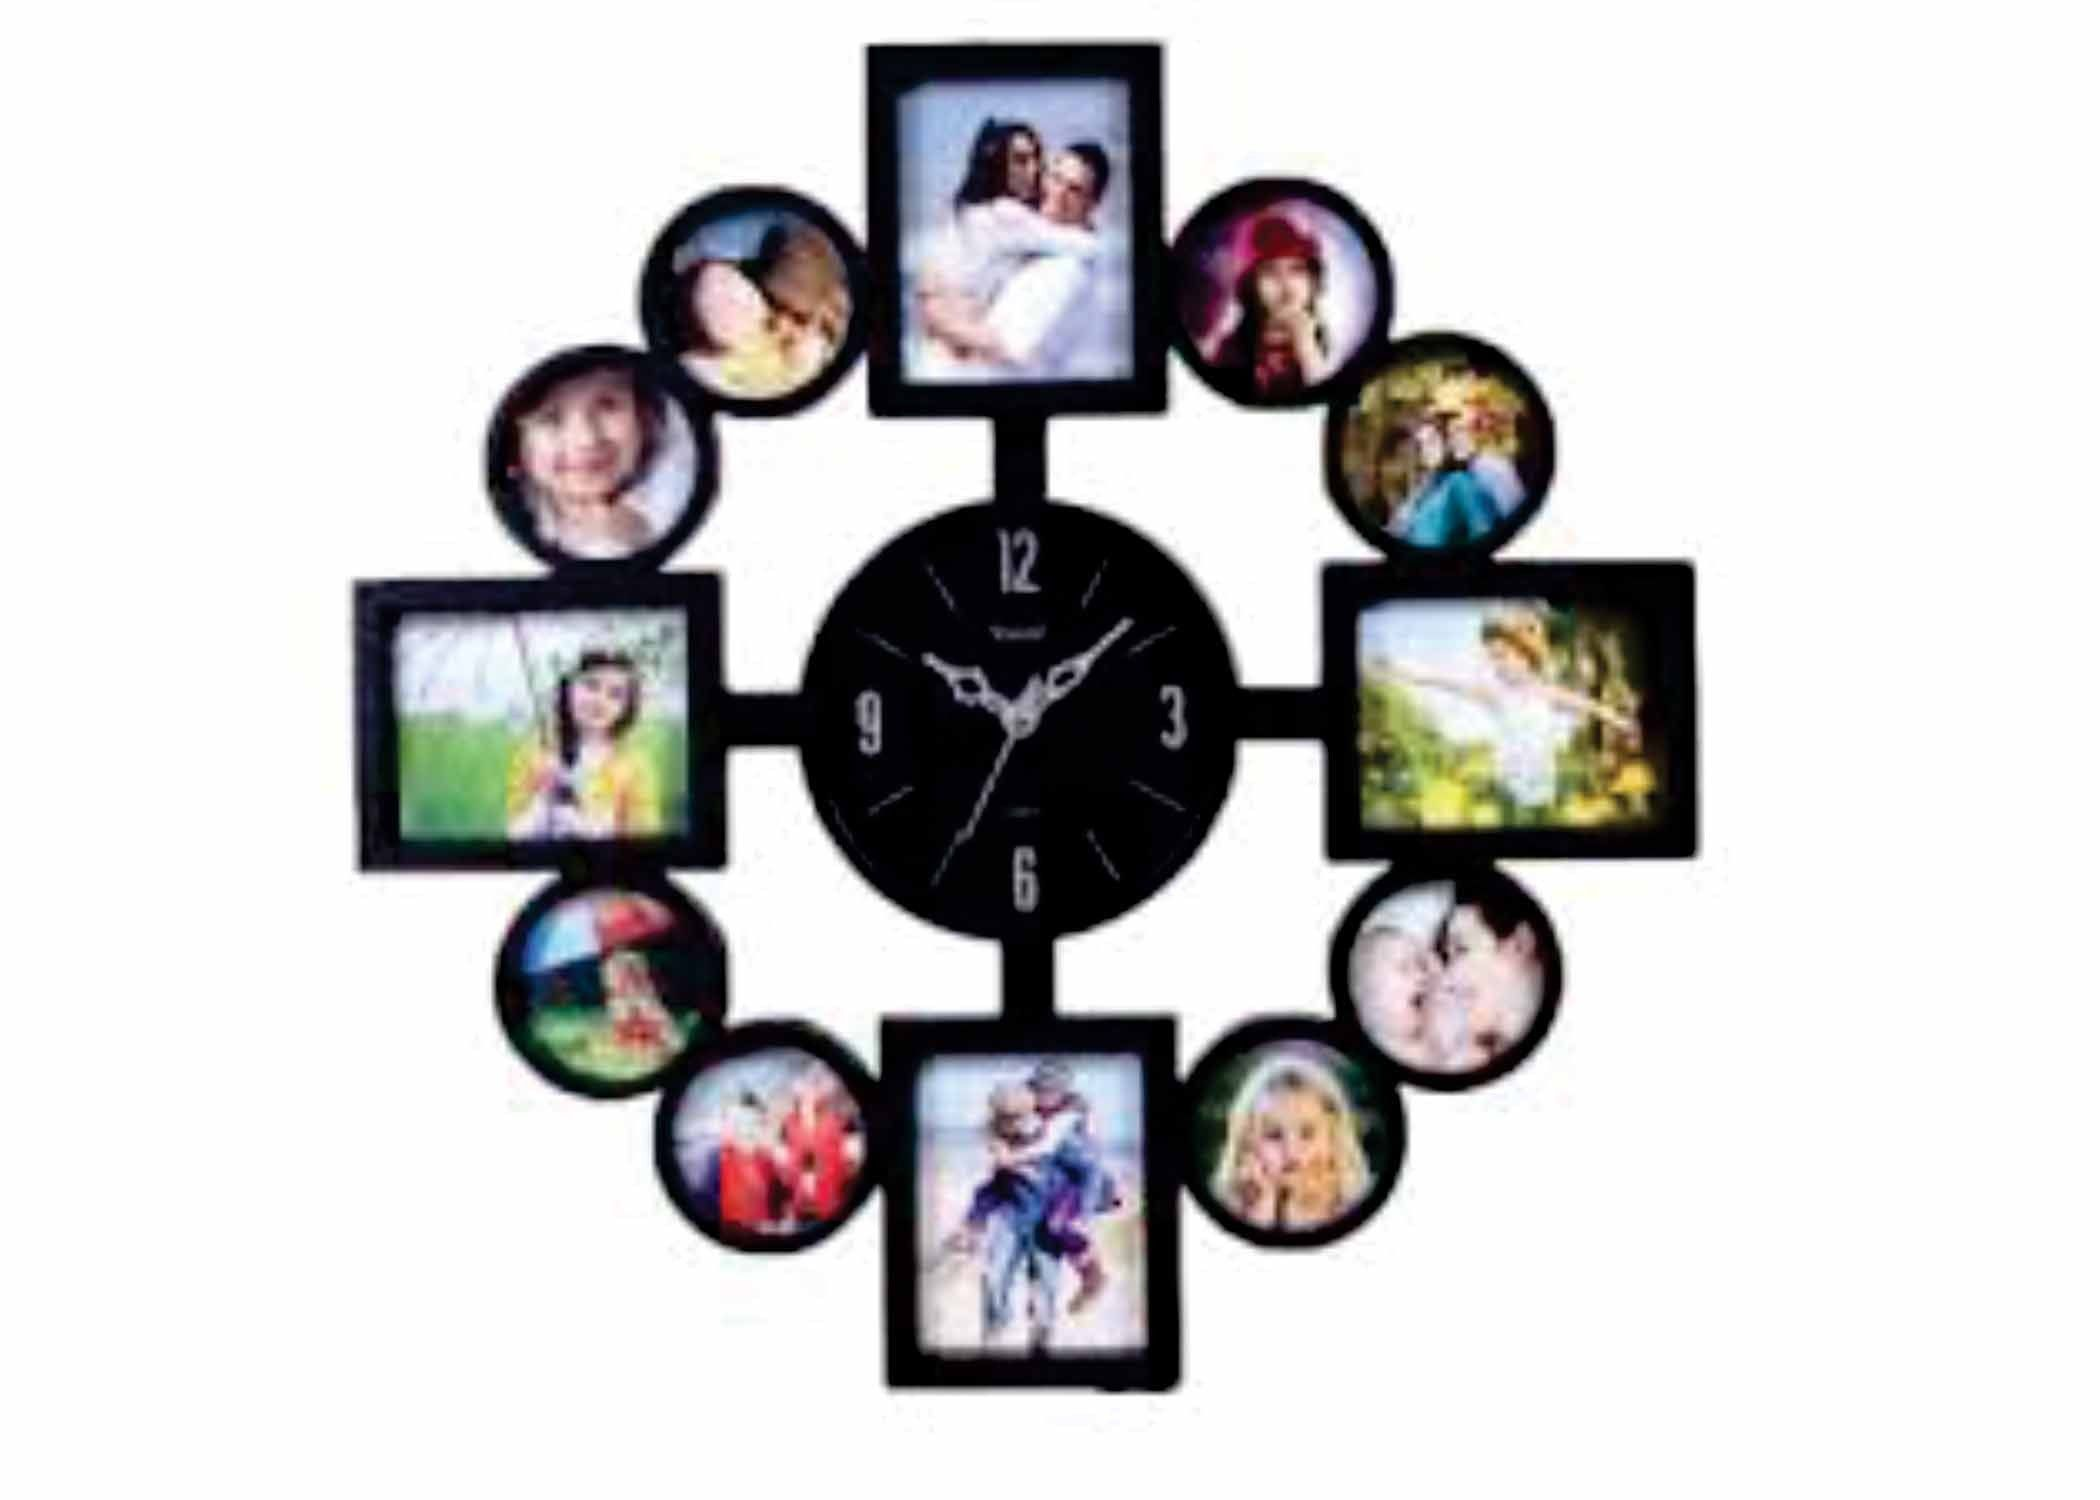 Personalized wall clock 12 pic collage frame valentines day personalized wall clock 12 pic collage frame amipublicfo Images